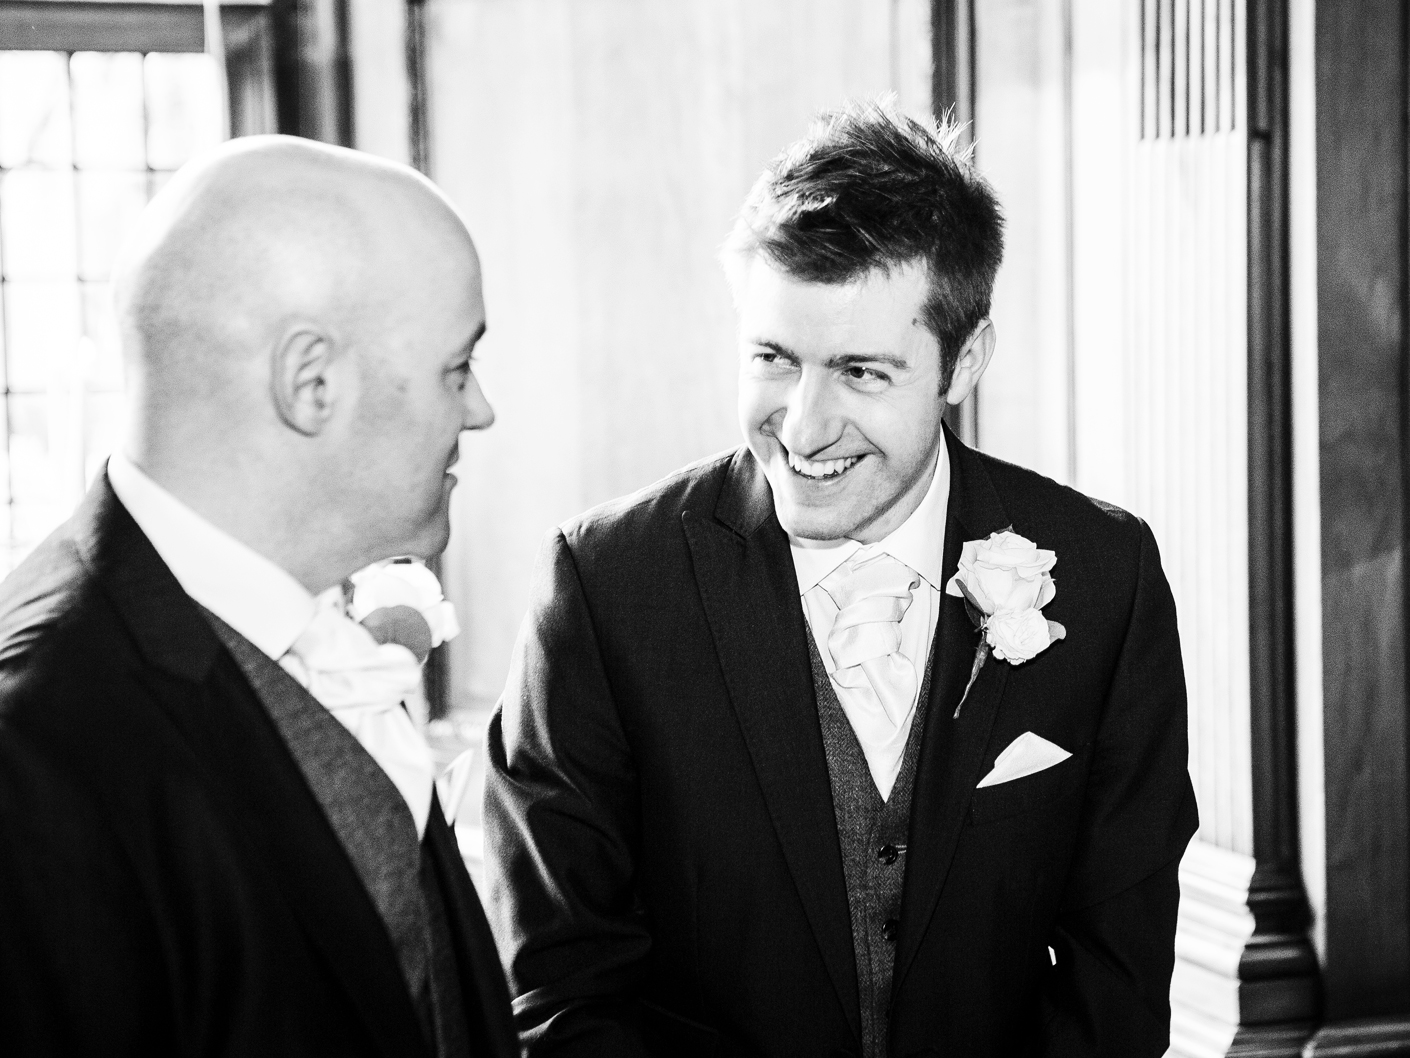 wedding-photography-of-the-groom-and-best-man-at-thornton-manor-wirral